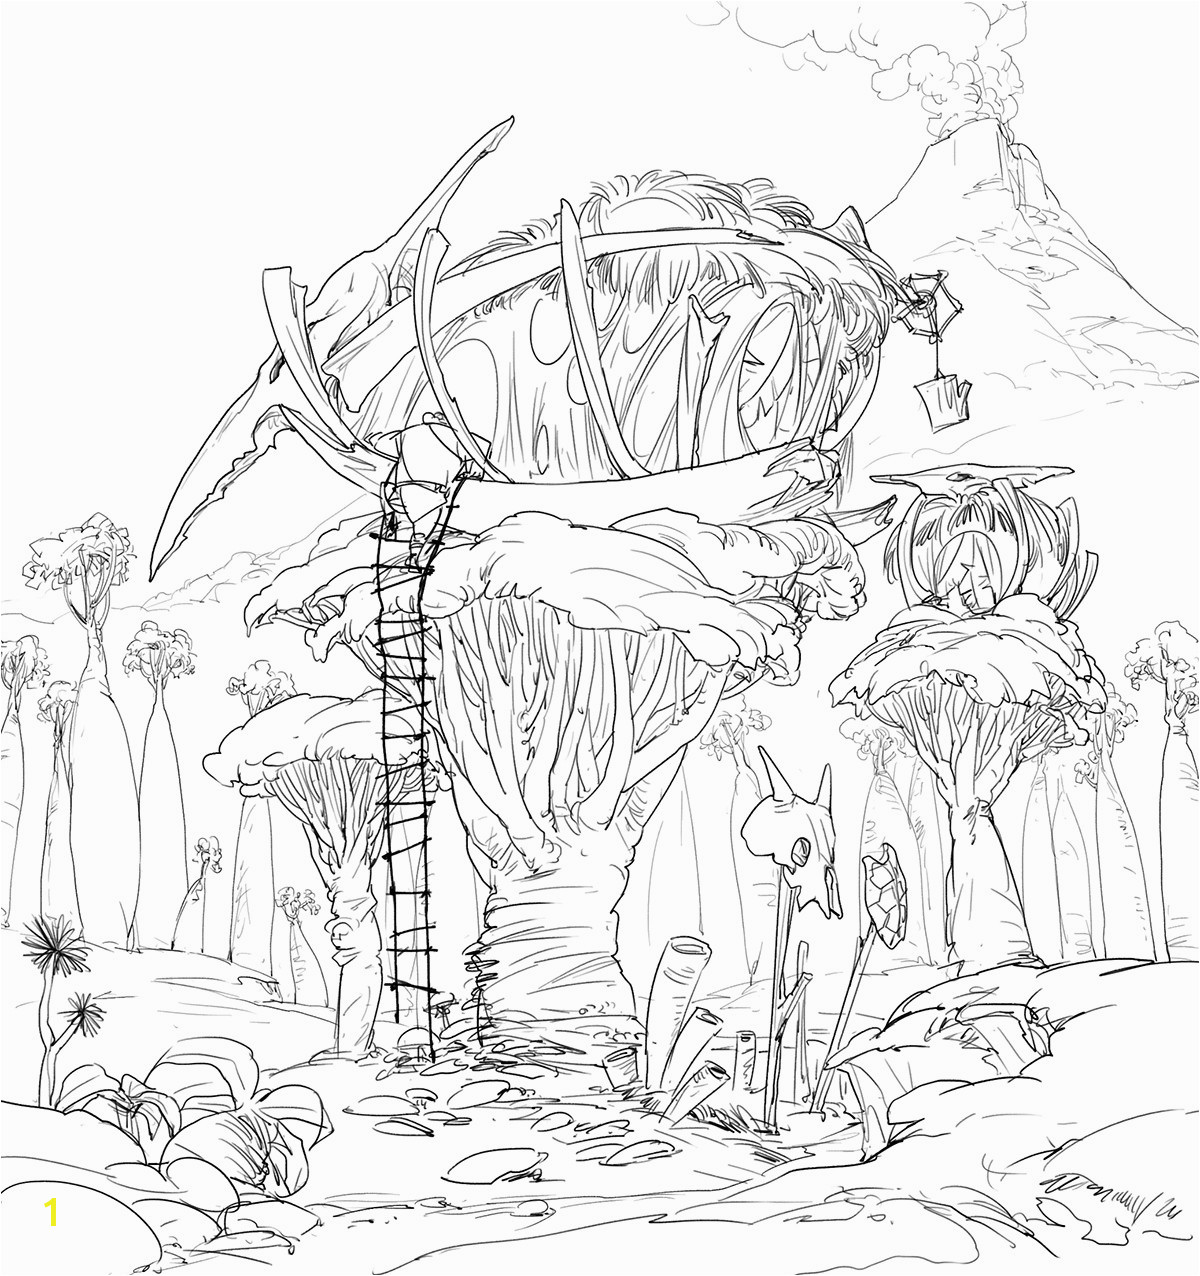 Tree House Coloring Pages Printable for Kids for Related Post